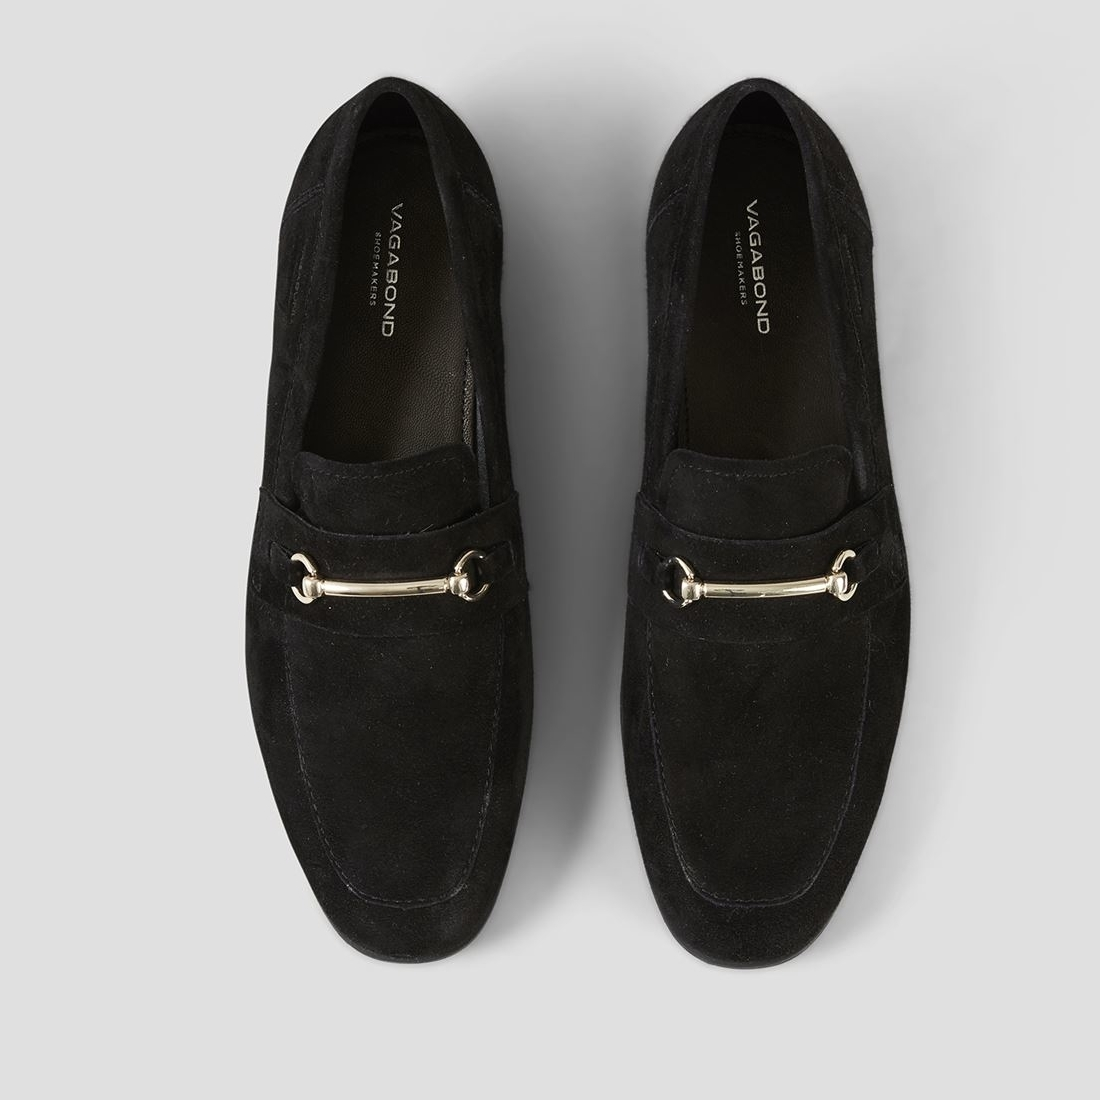 Black Marilyn Suede Loafers